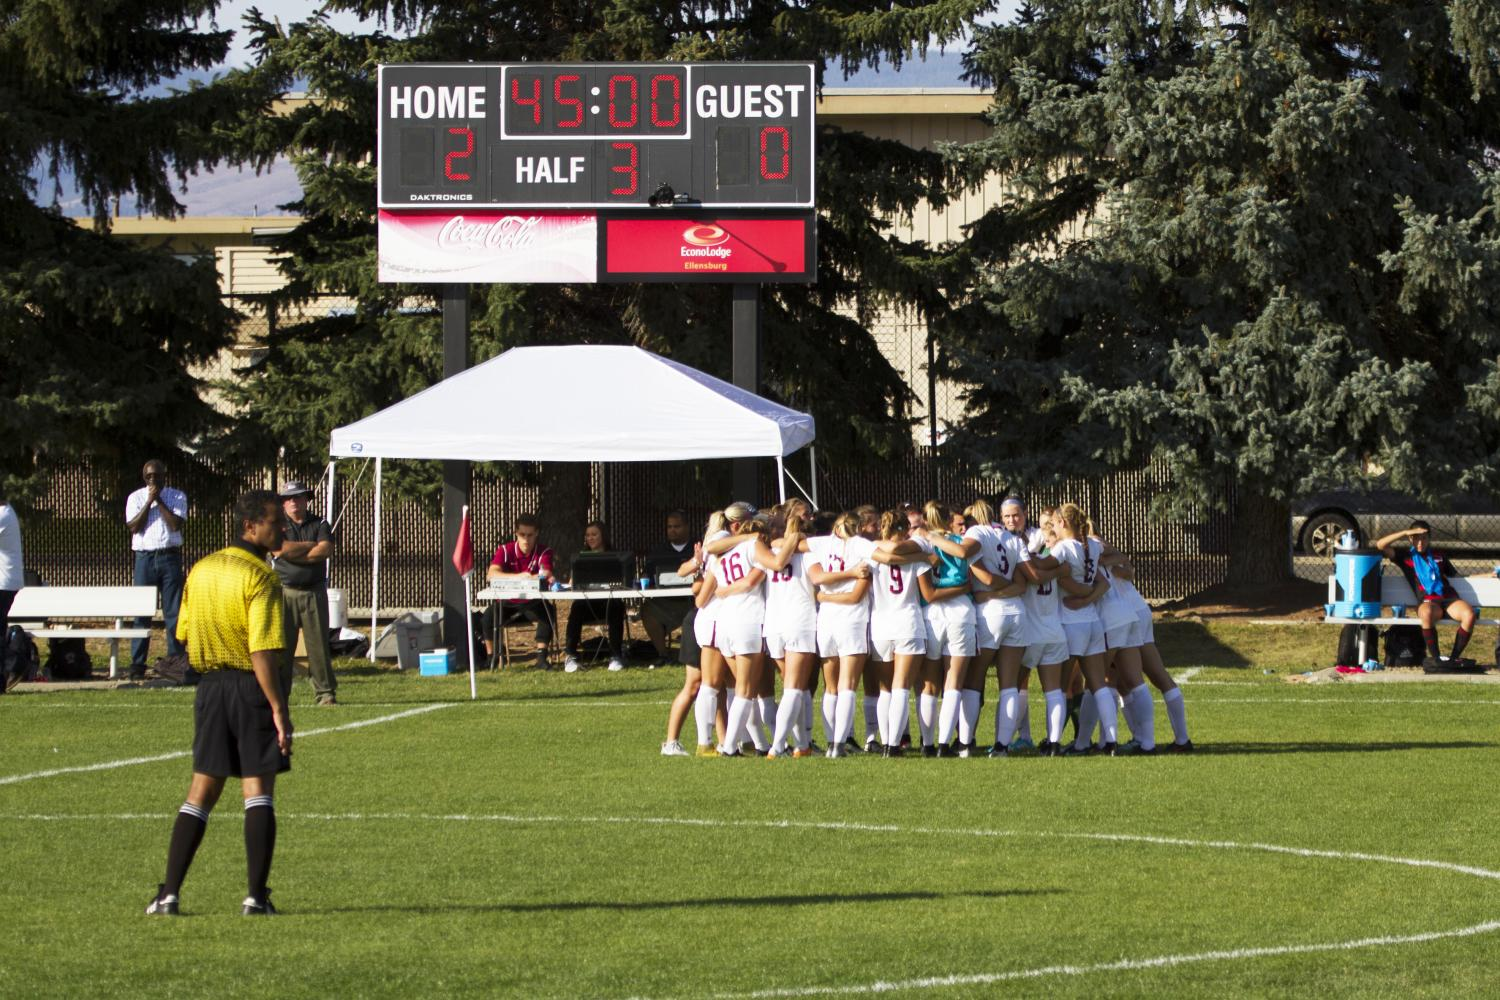 Women's soccer he's spent the past week preparing for Thursday's match against reigning national champions, WWU.